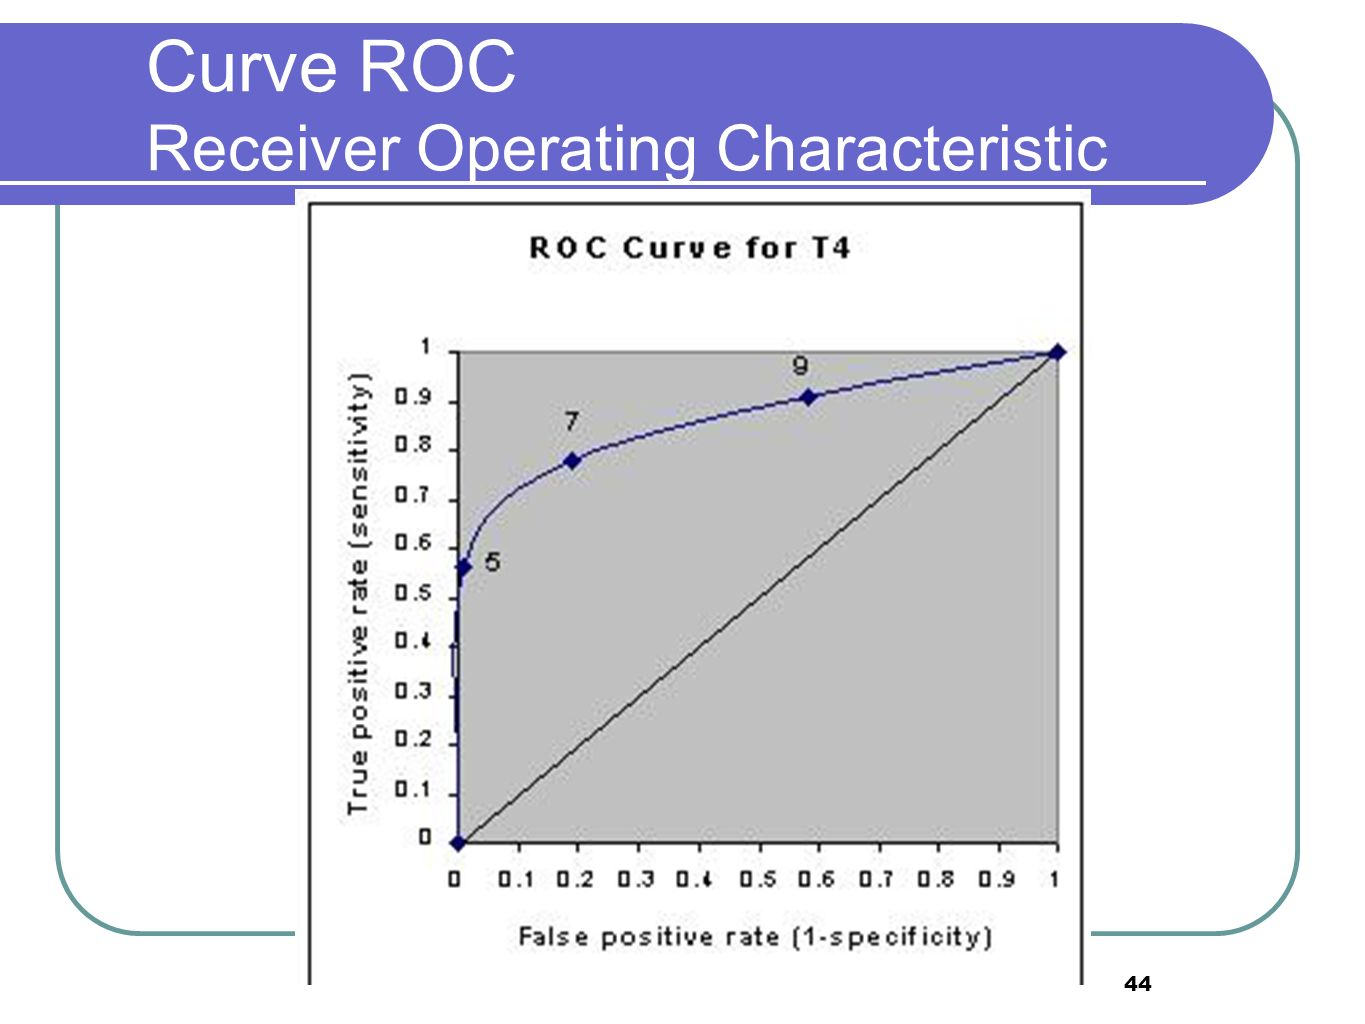 Curve ROC Receiver Operating Characteristic